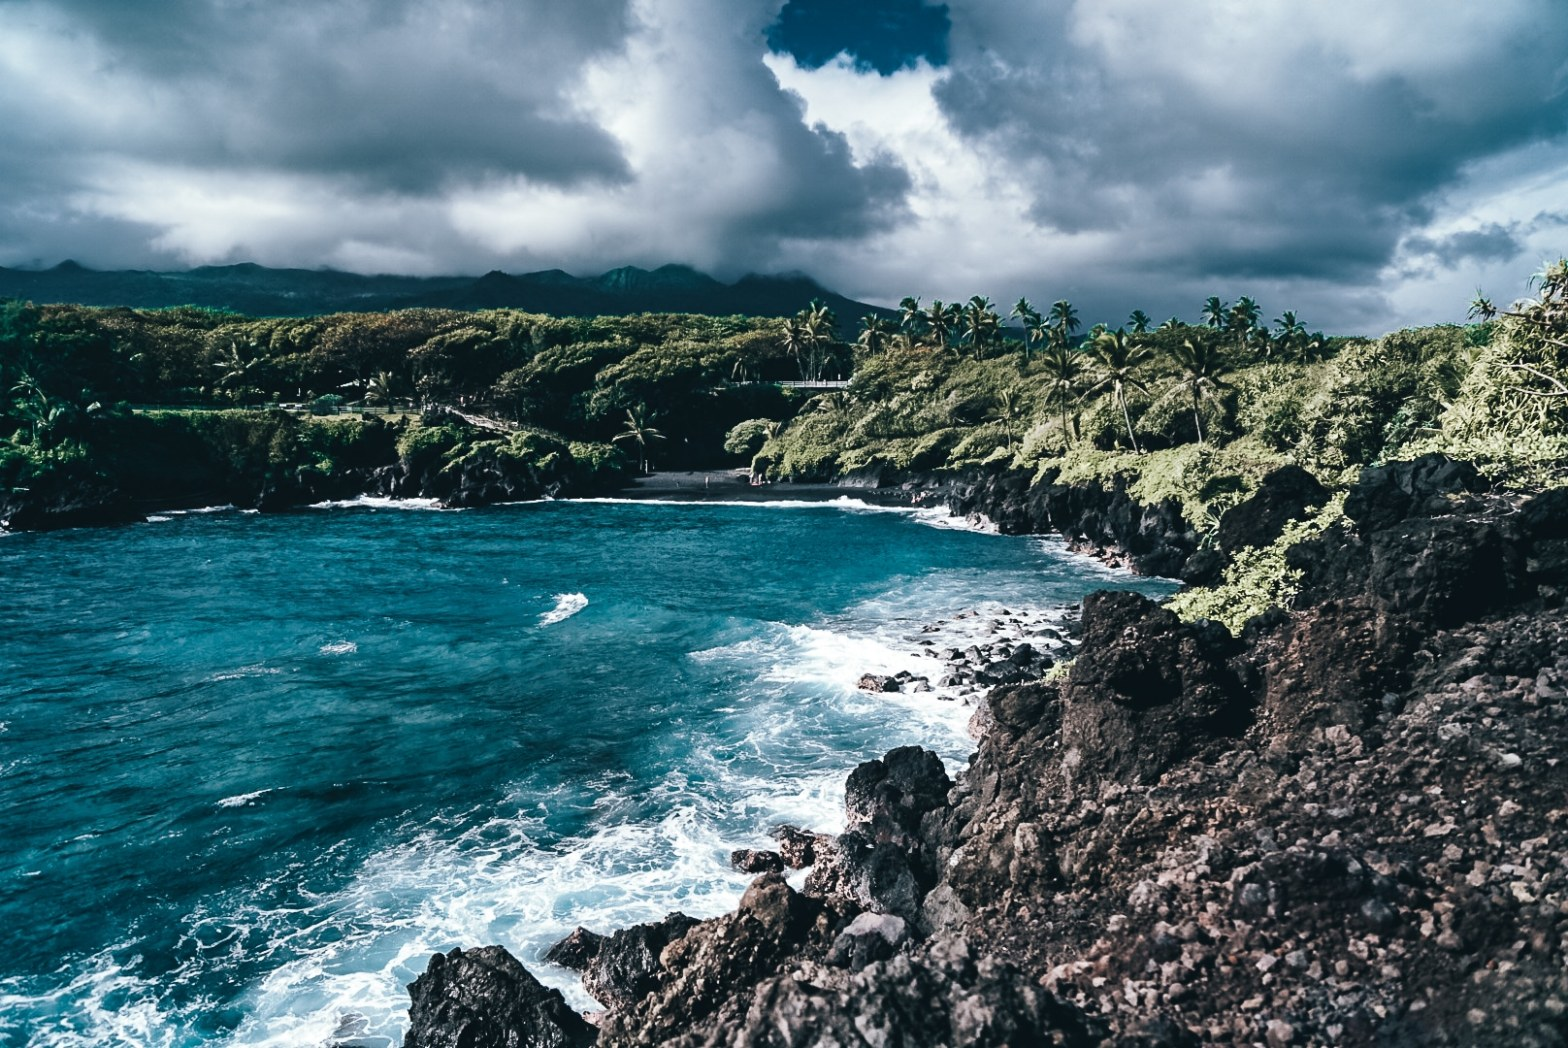 View of the black sand beach at Waianapanapa State Park